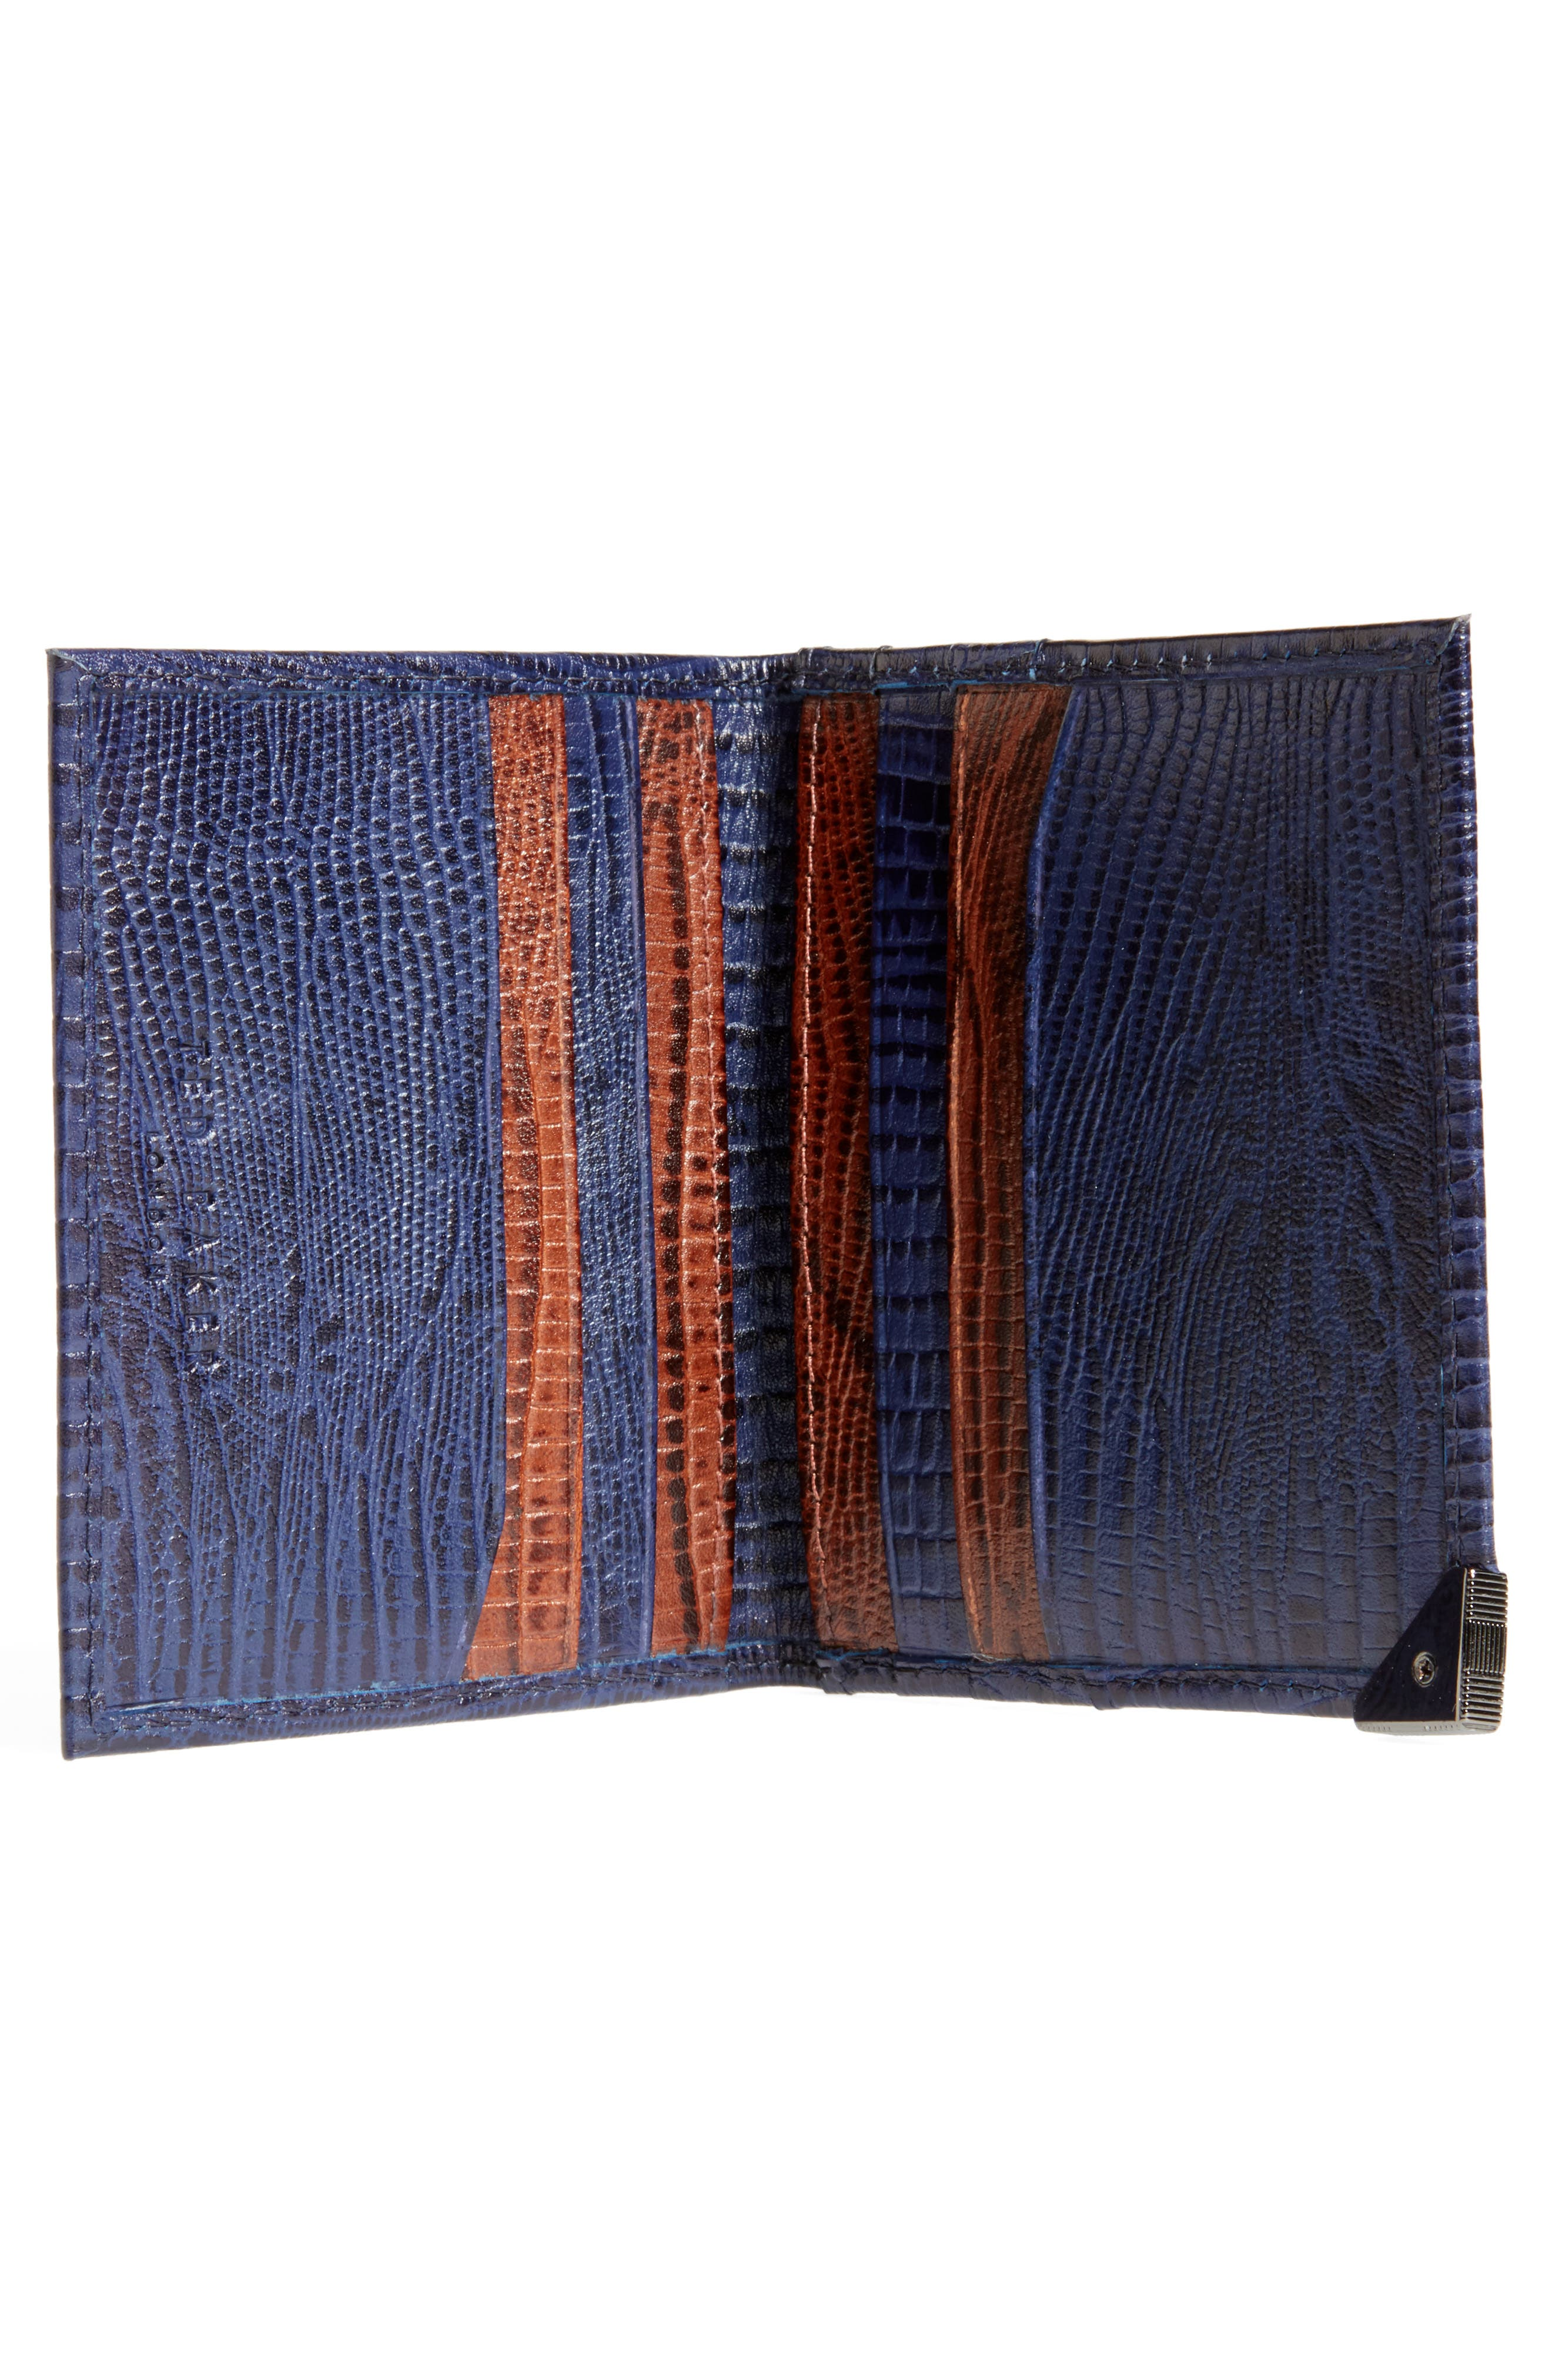 Liztay Lizard Embossed Leather Foldover Card Case,                             Alternate thumbnail 2, color,                             Navy